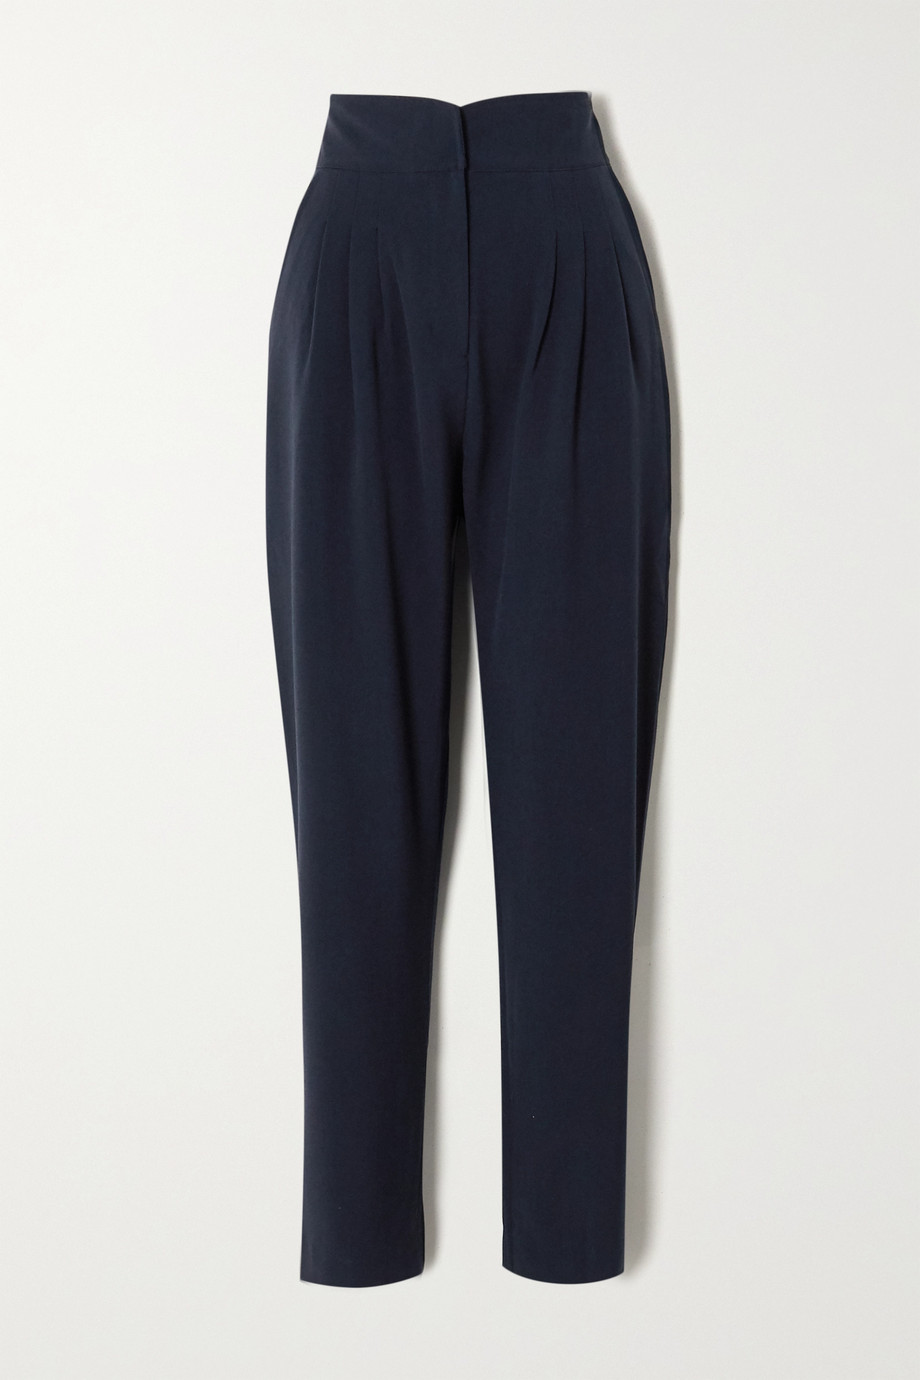 Àcheval Pampa Gato pleated woven tapered pants